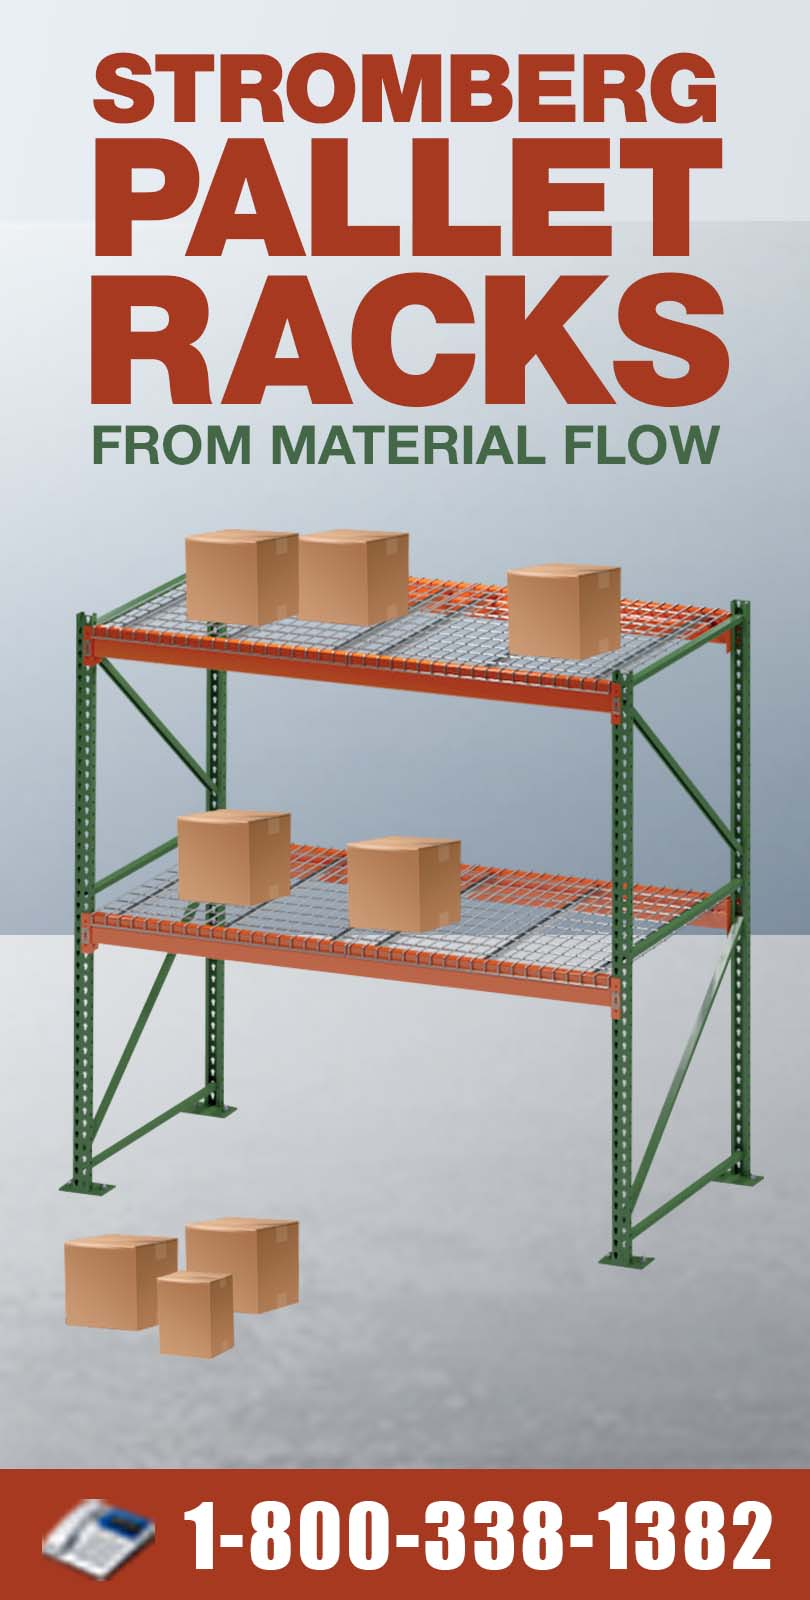 Stromberg Pallet Racking from Material Flow